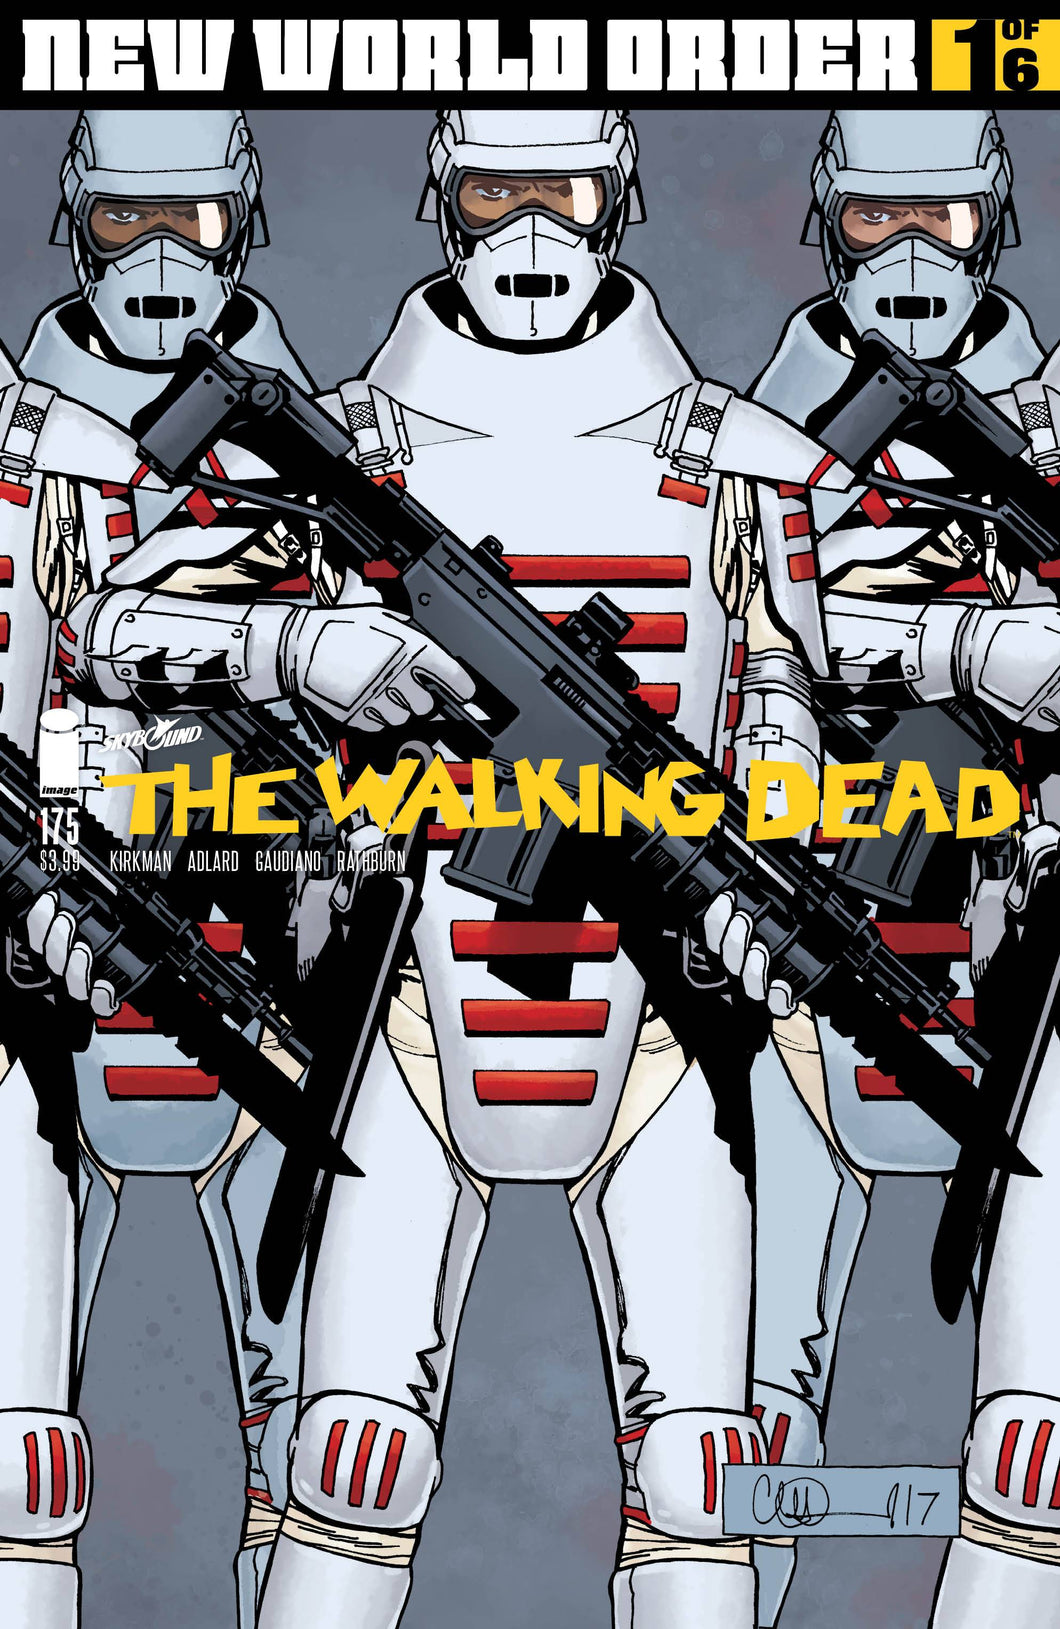 WALKING DEAD #175 CVR A ADLARD & STEWART (MR)